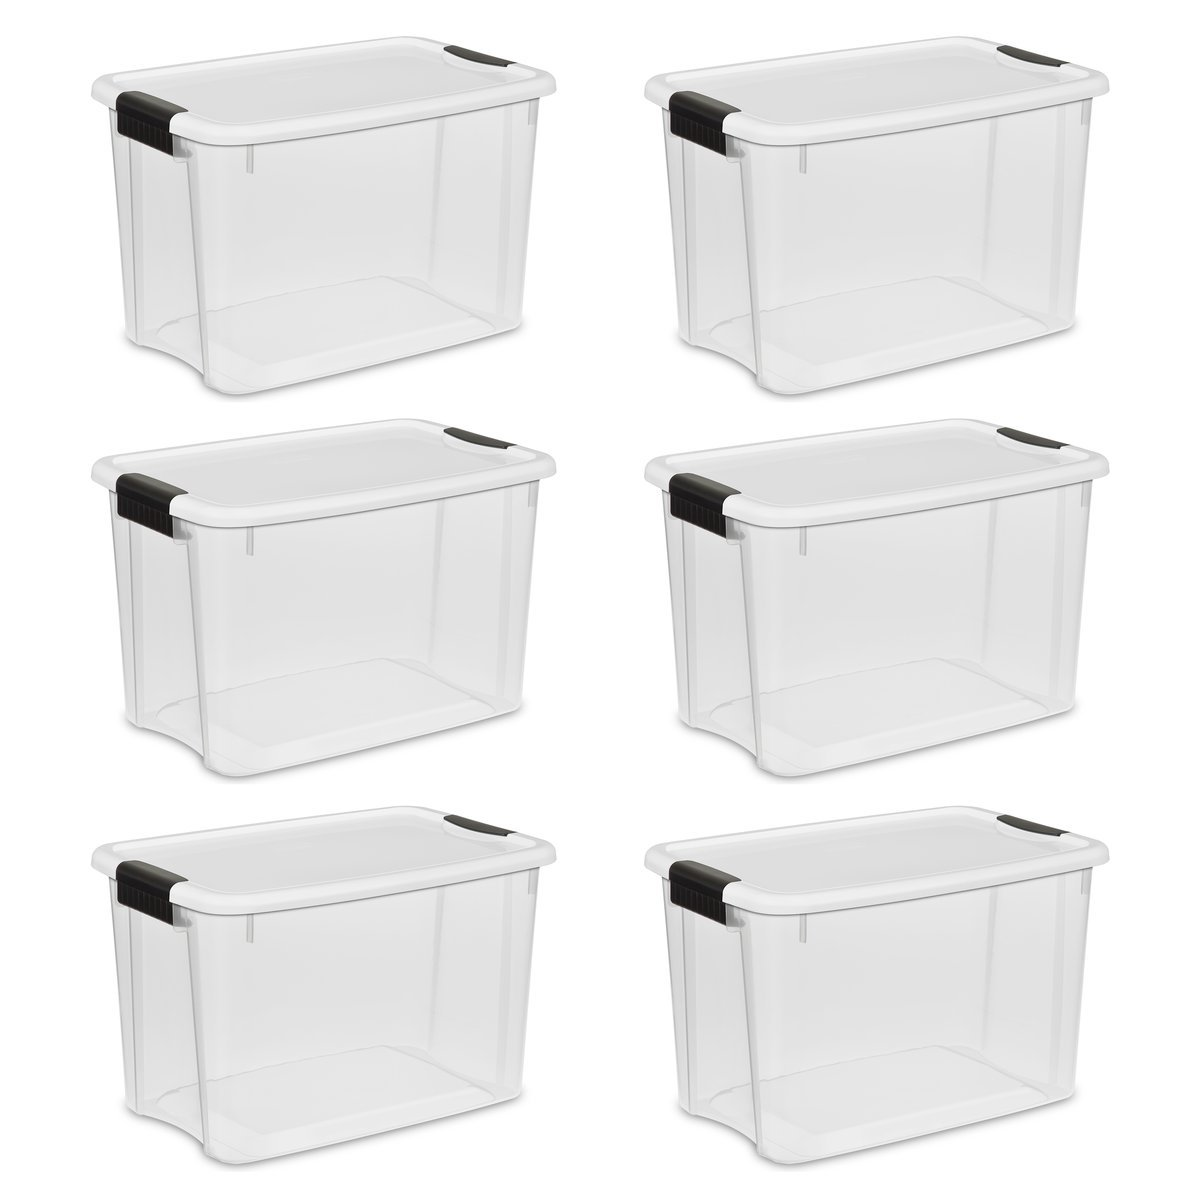 STERILITE 19859806, 30 Quart/28 Liter Ultra Latch Box, Clear with a White Lid and Black Latches, 6-Pack by STERILITE